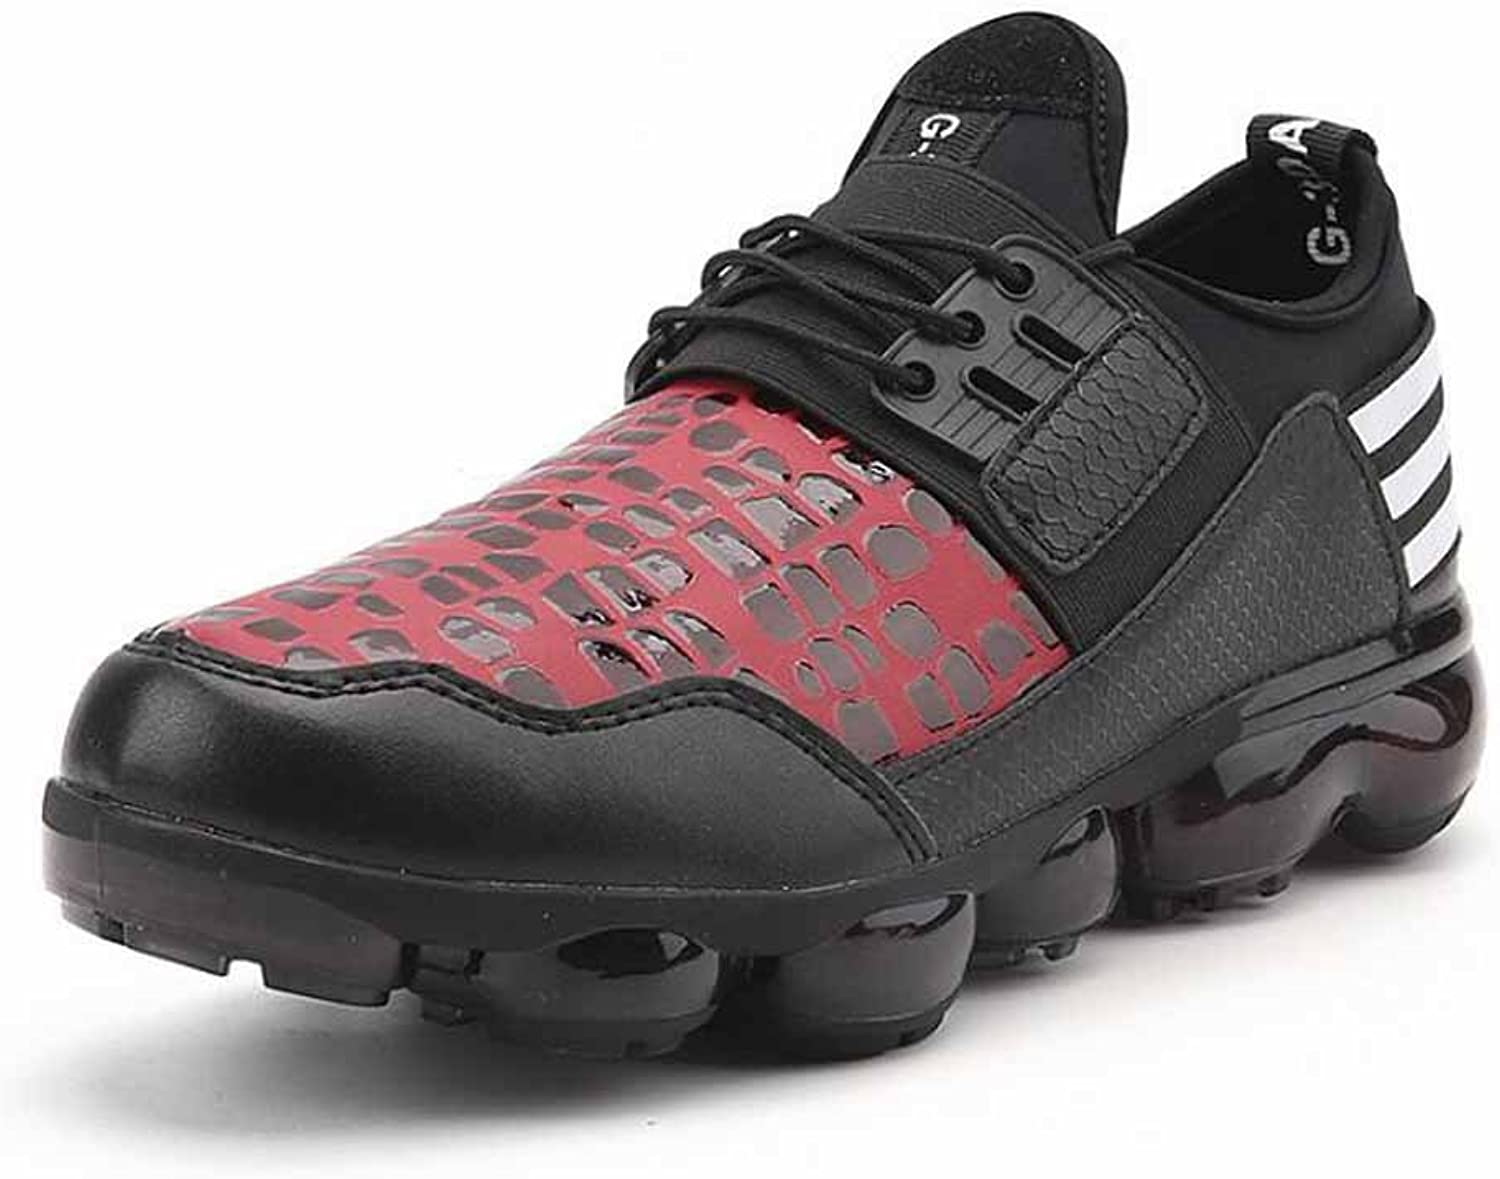 Men Lightweight Running shoes 2017 Autumn New Breathable Athletic shoes Outdoor Fitness shoes